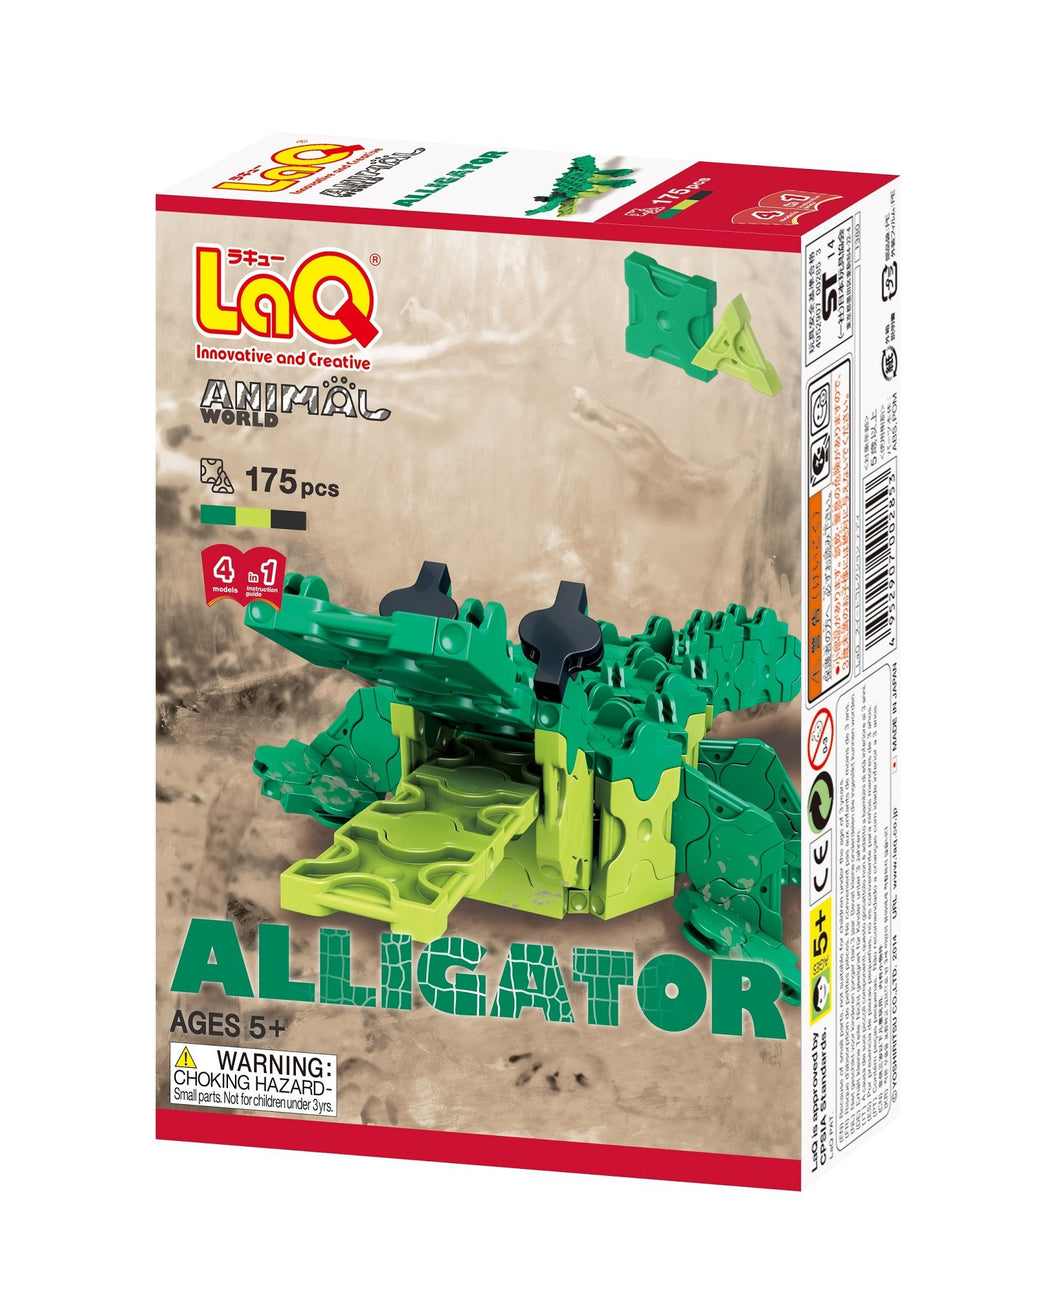 Alligator package front view from the LaQ animal world set